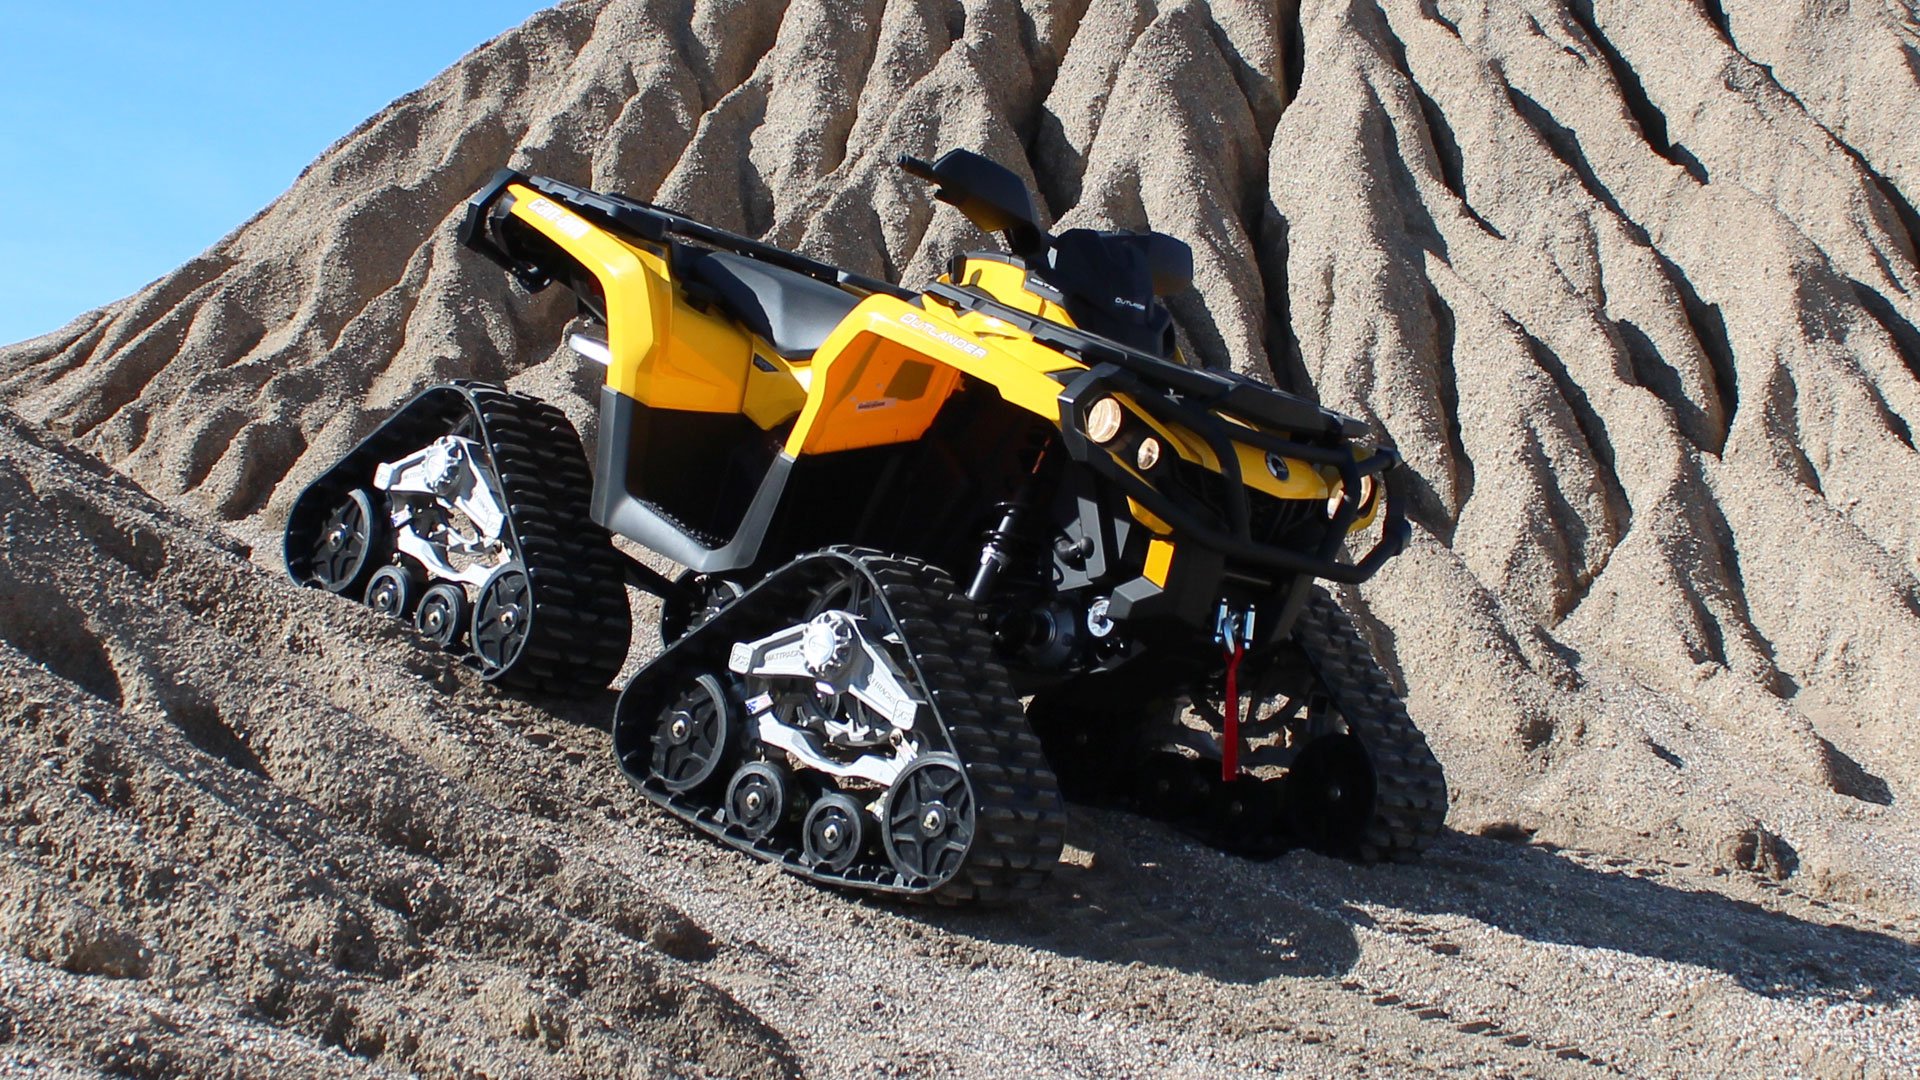 EZ HD Tracks on a Can-am Outlander XT 1000